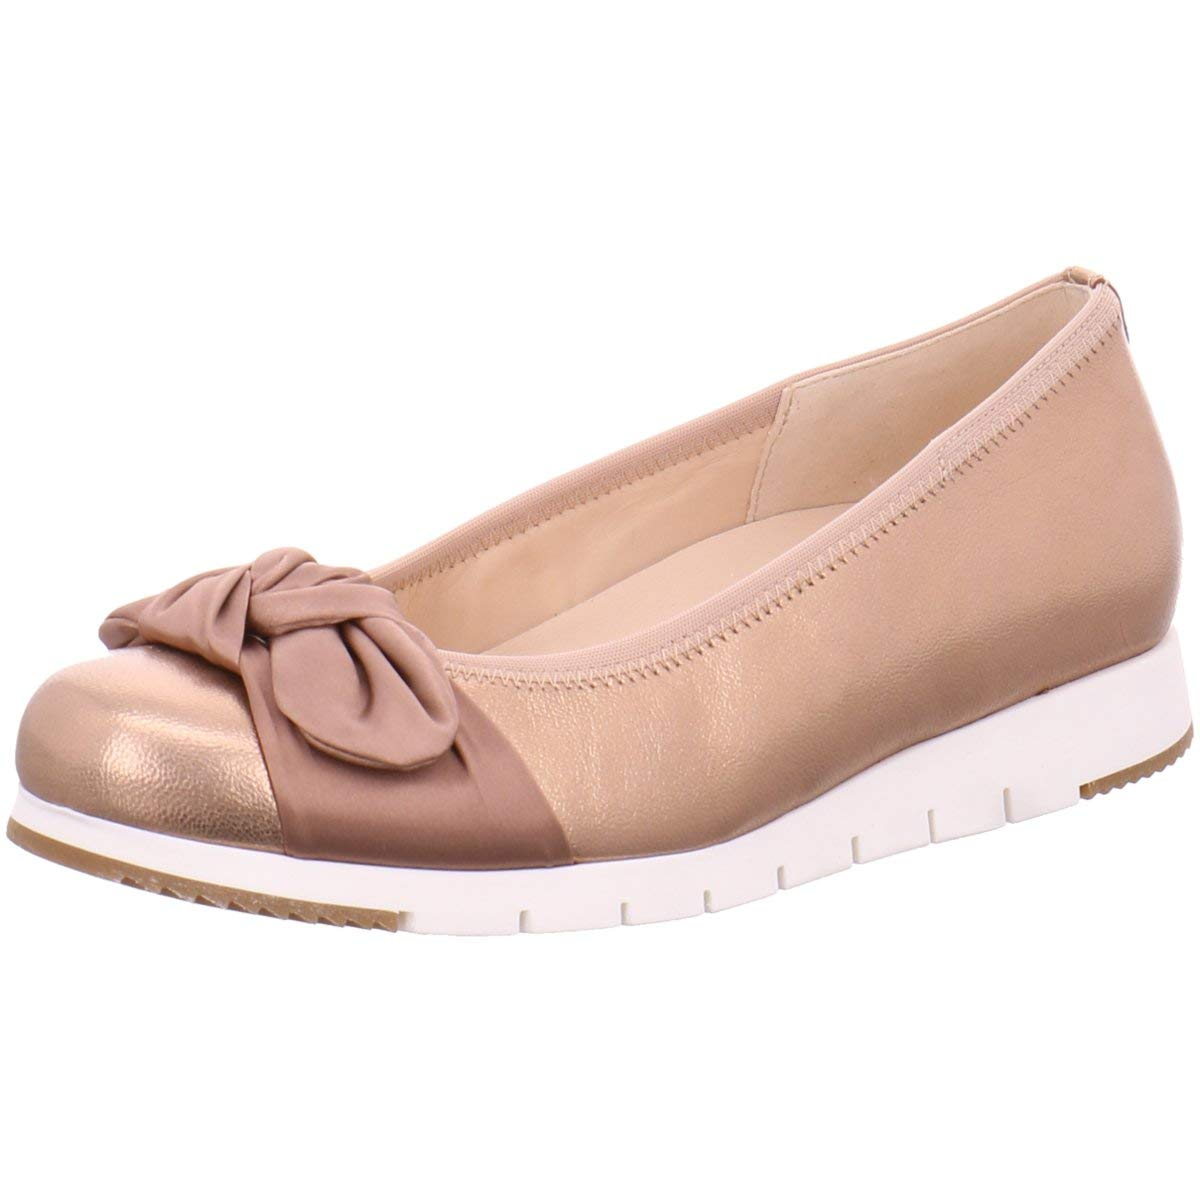 Gabor Damen Ballerinas 82611 62 Gold 440113